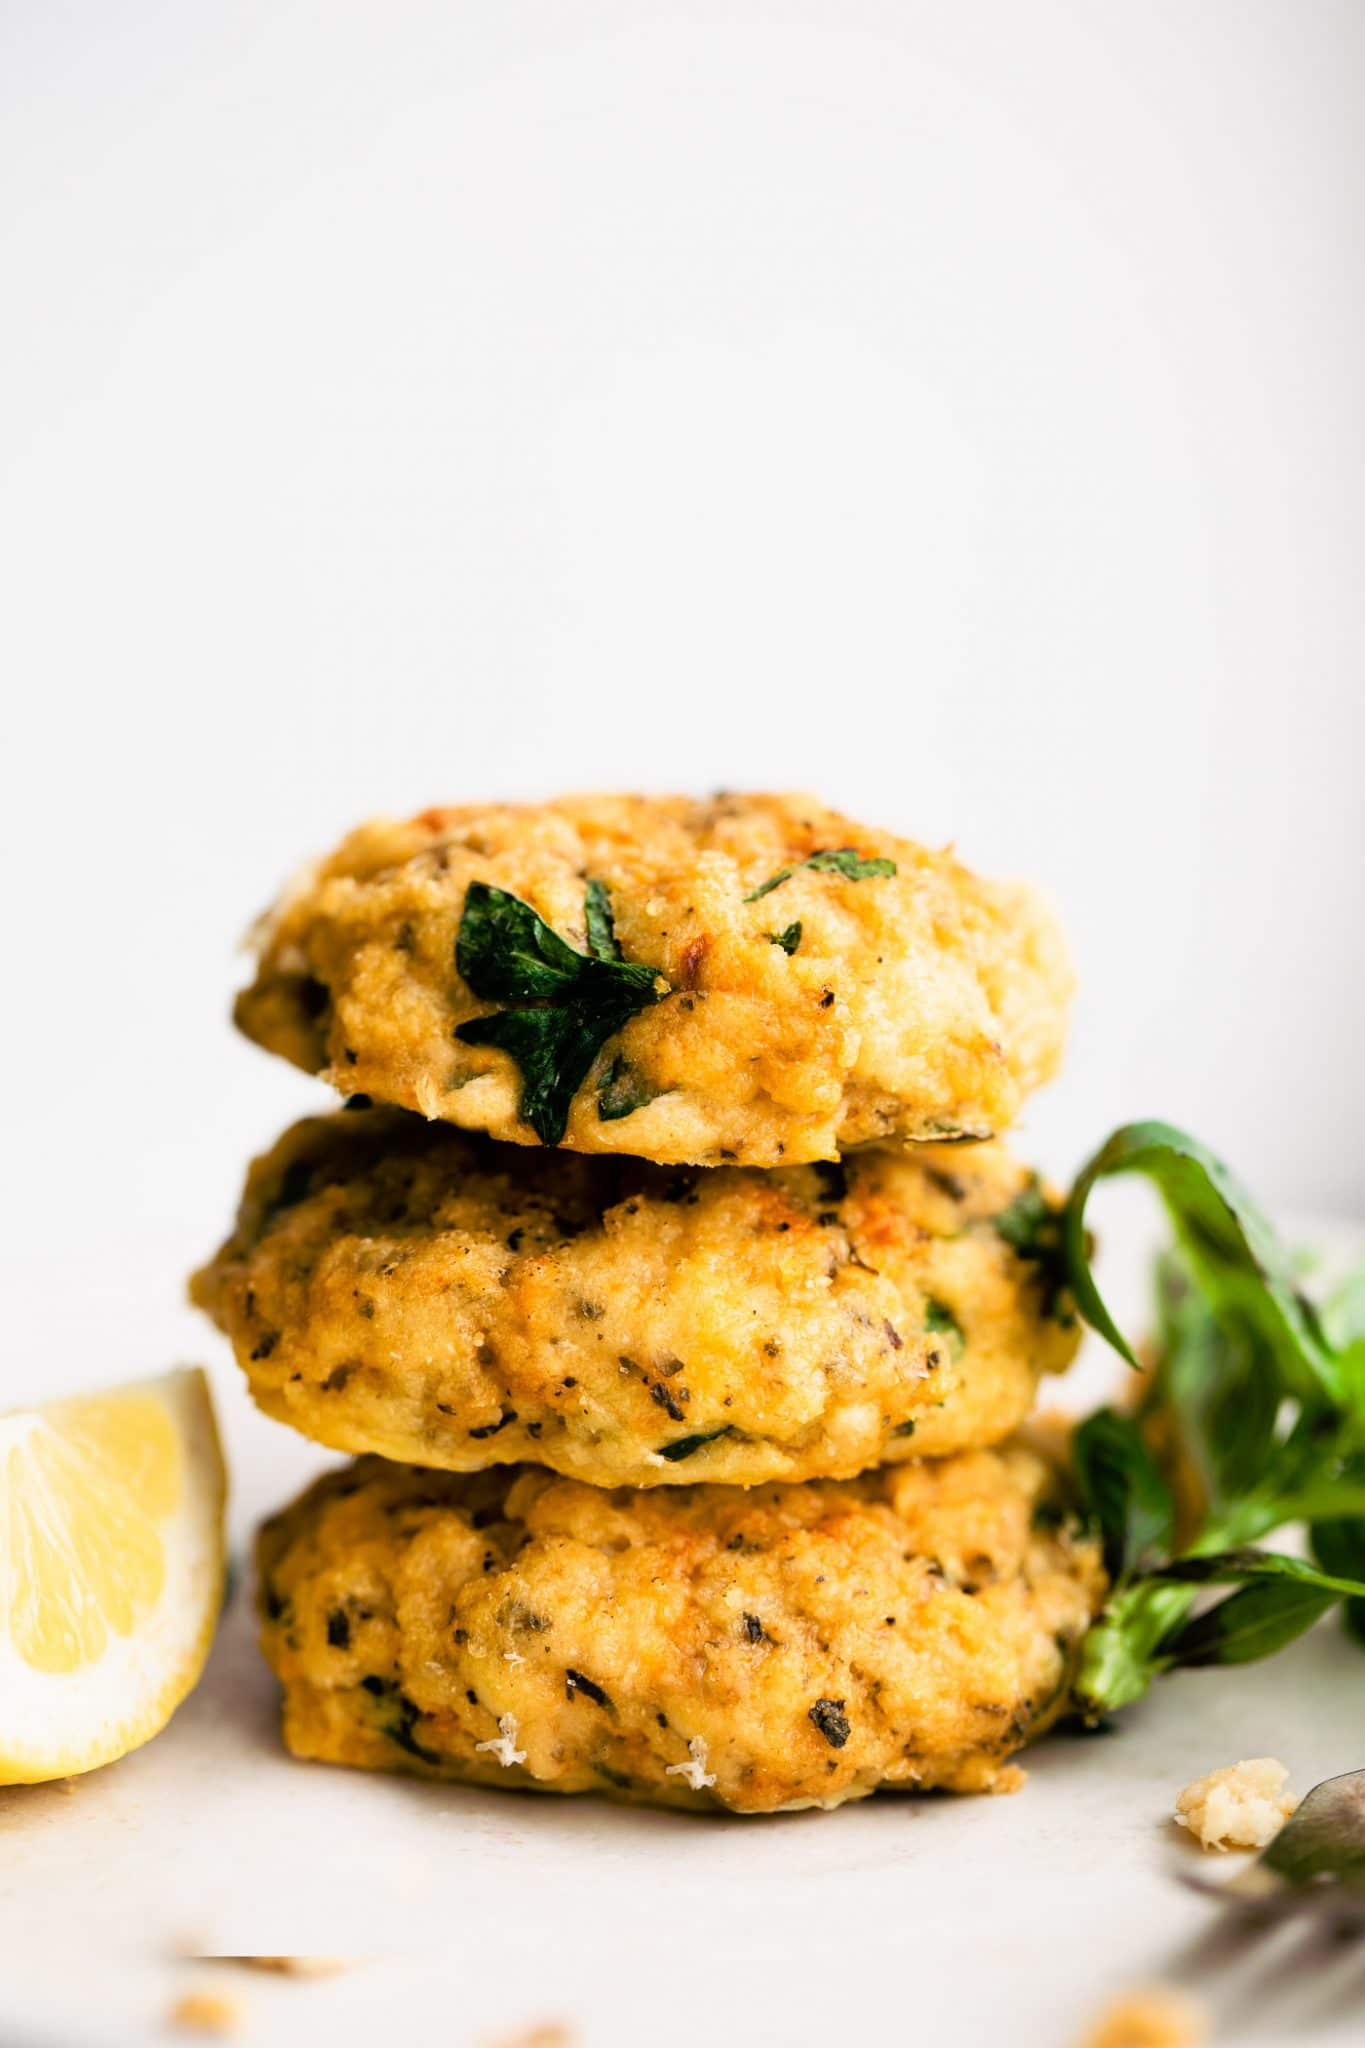 A side image of three cod cakes stacked on top of each other with fresh parsley and lemon on the side.